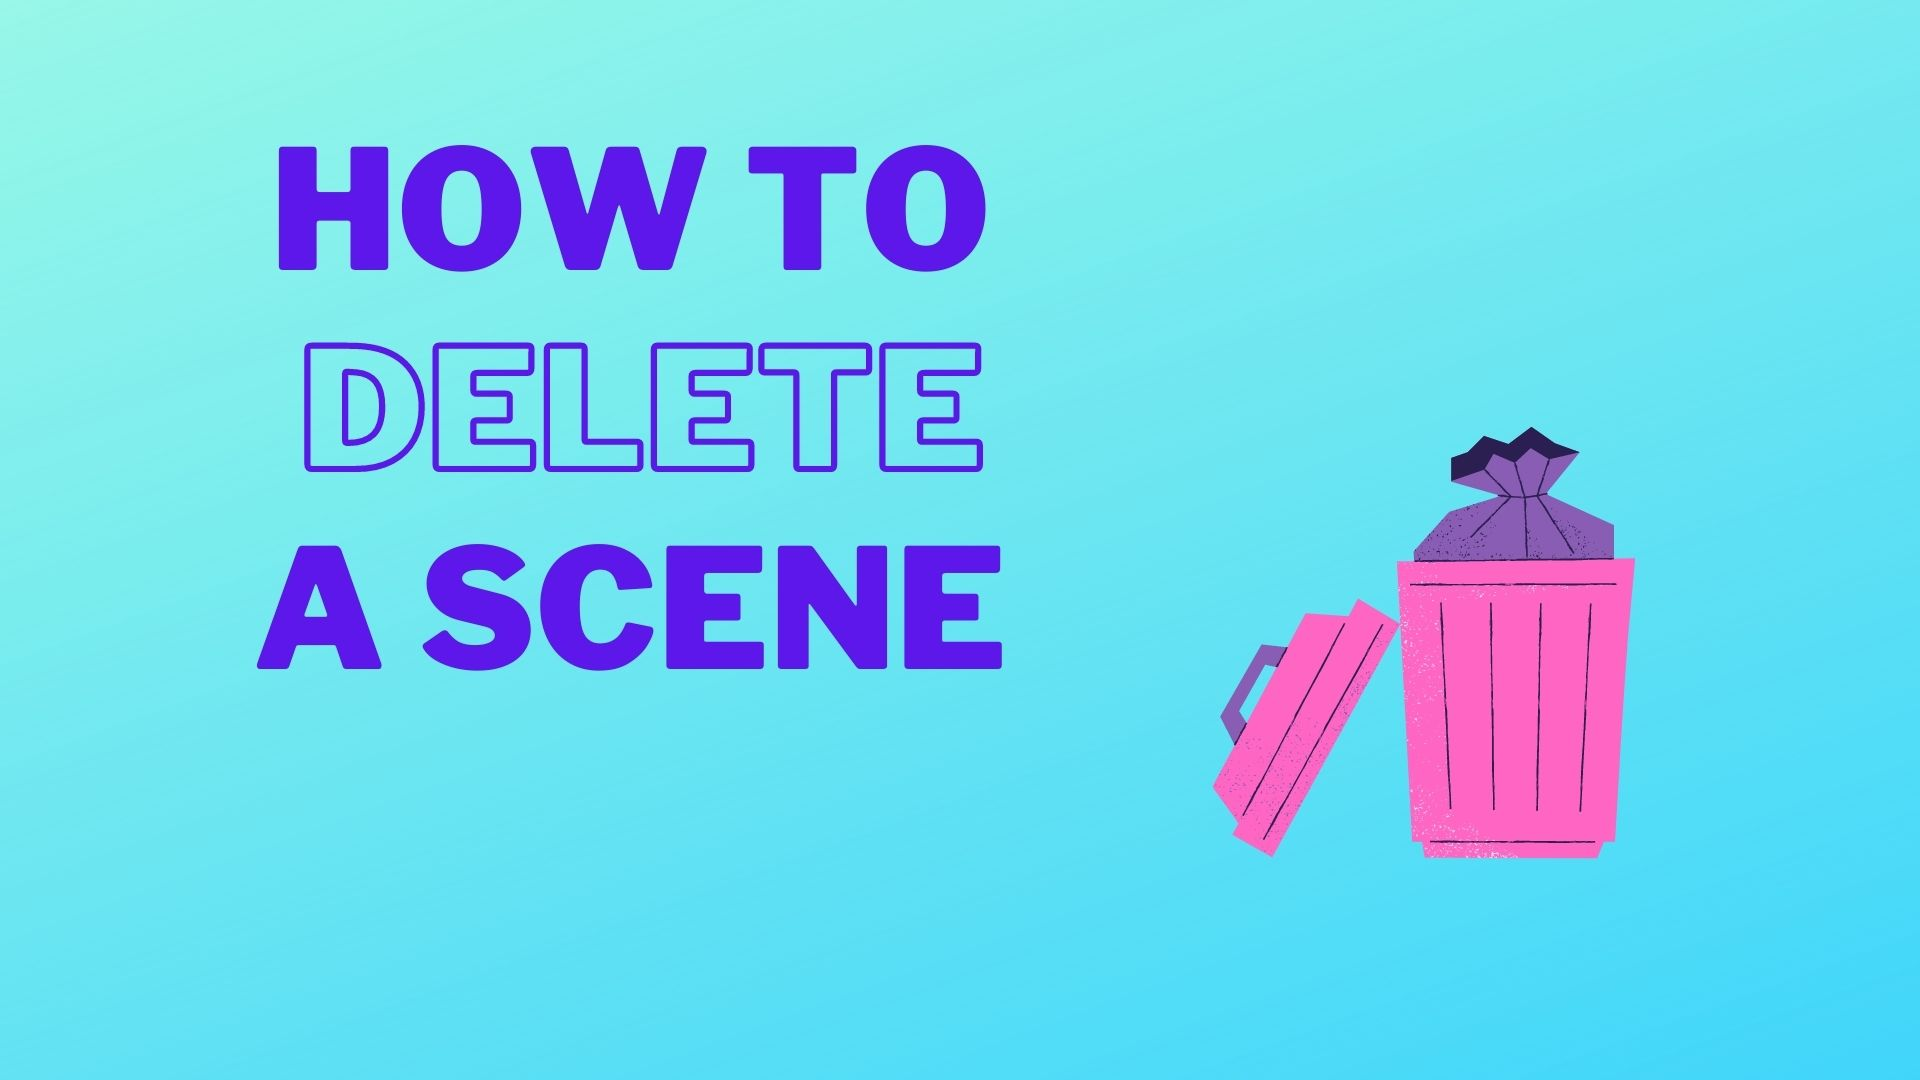 How to Delete a Scene